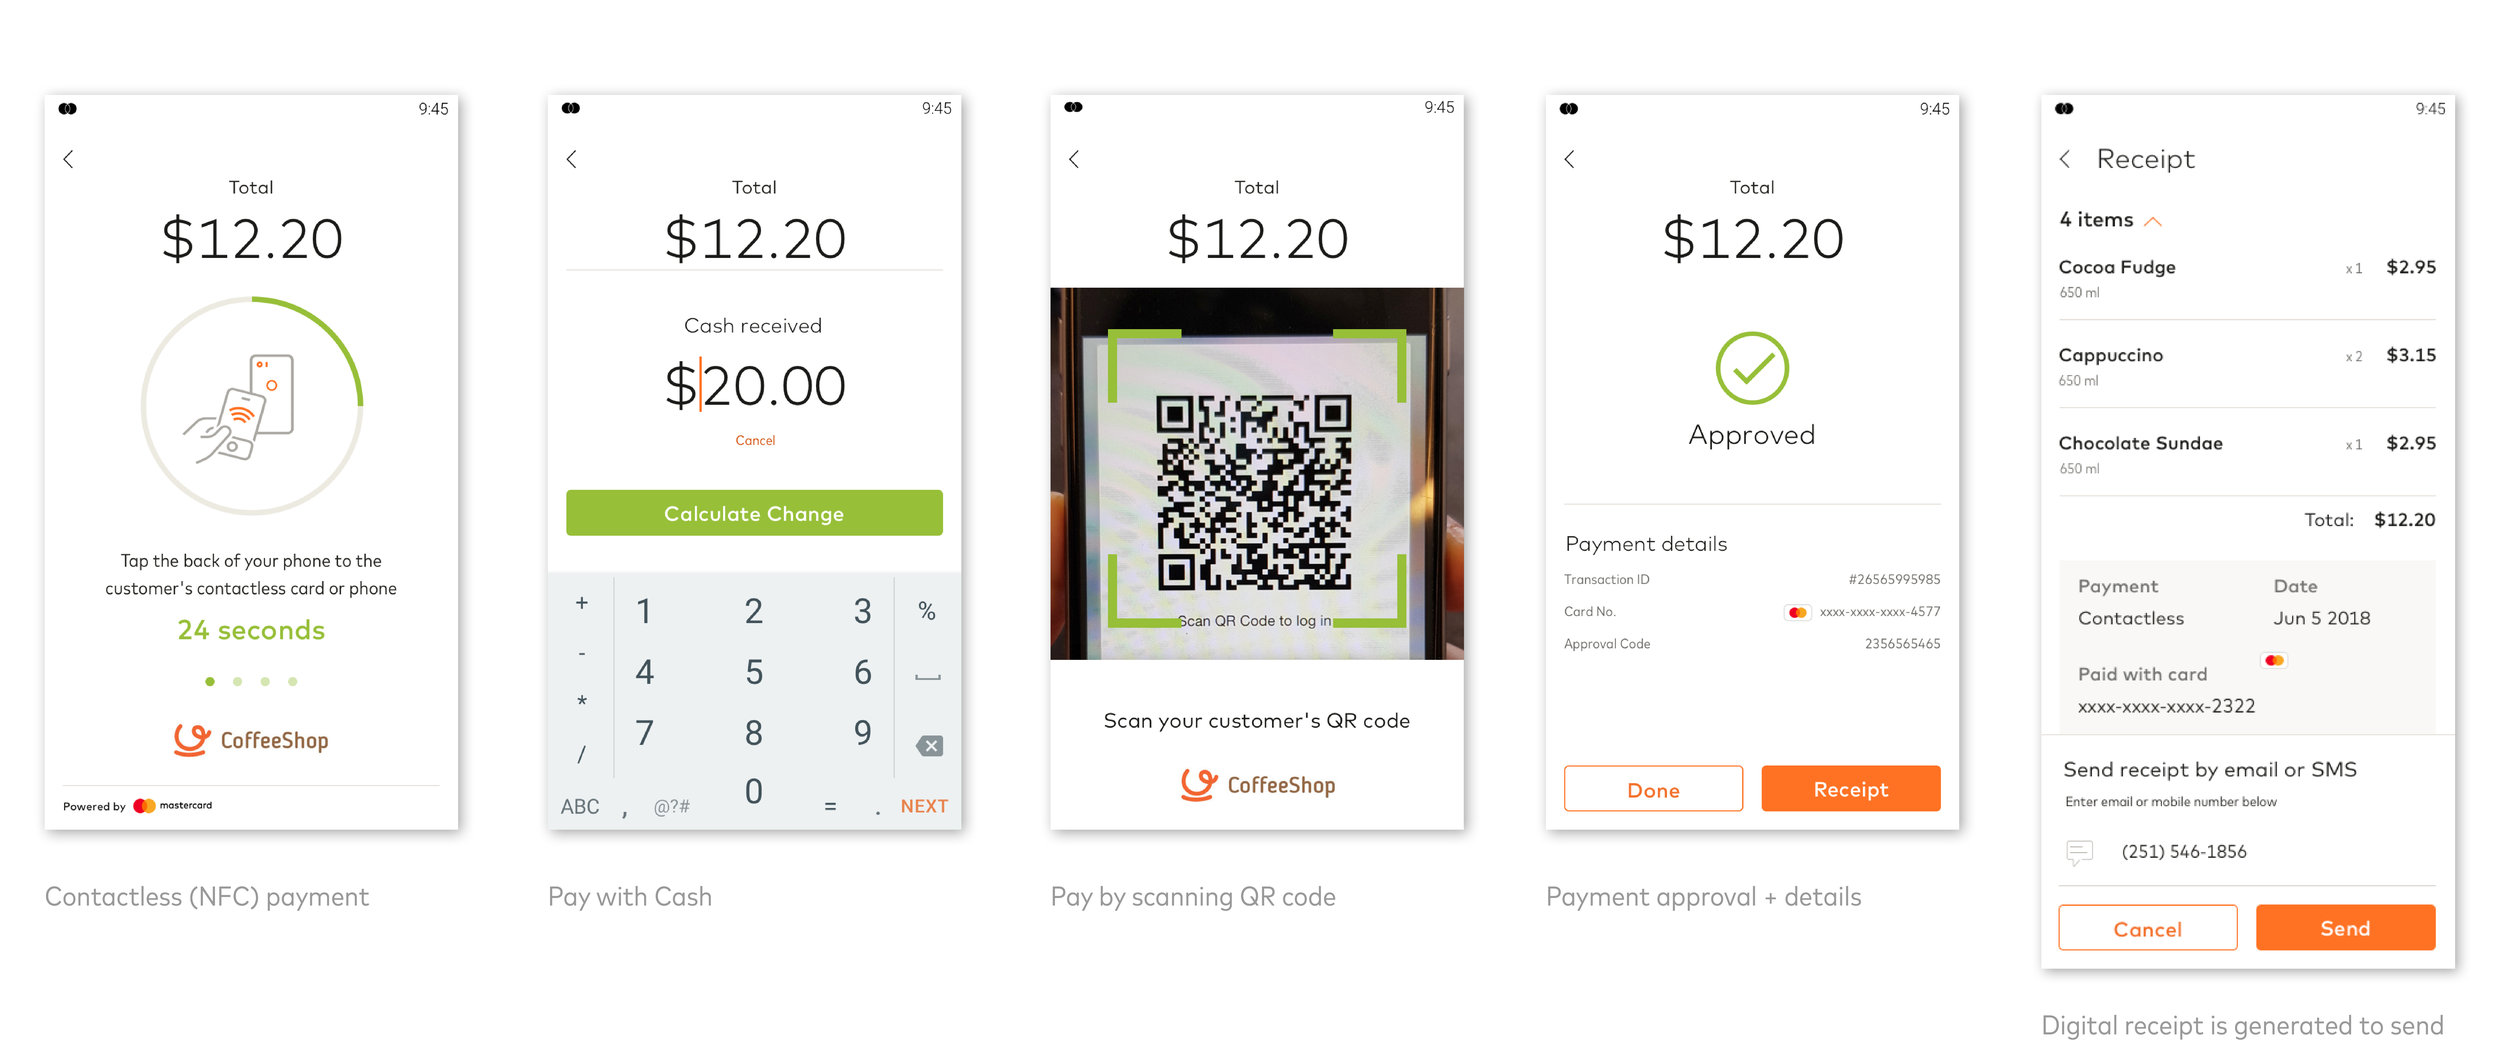 These include the key screens for each payment acceptance method (Contactless, Cash, Scan QR)